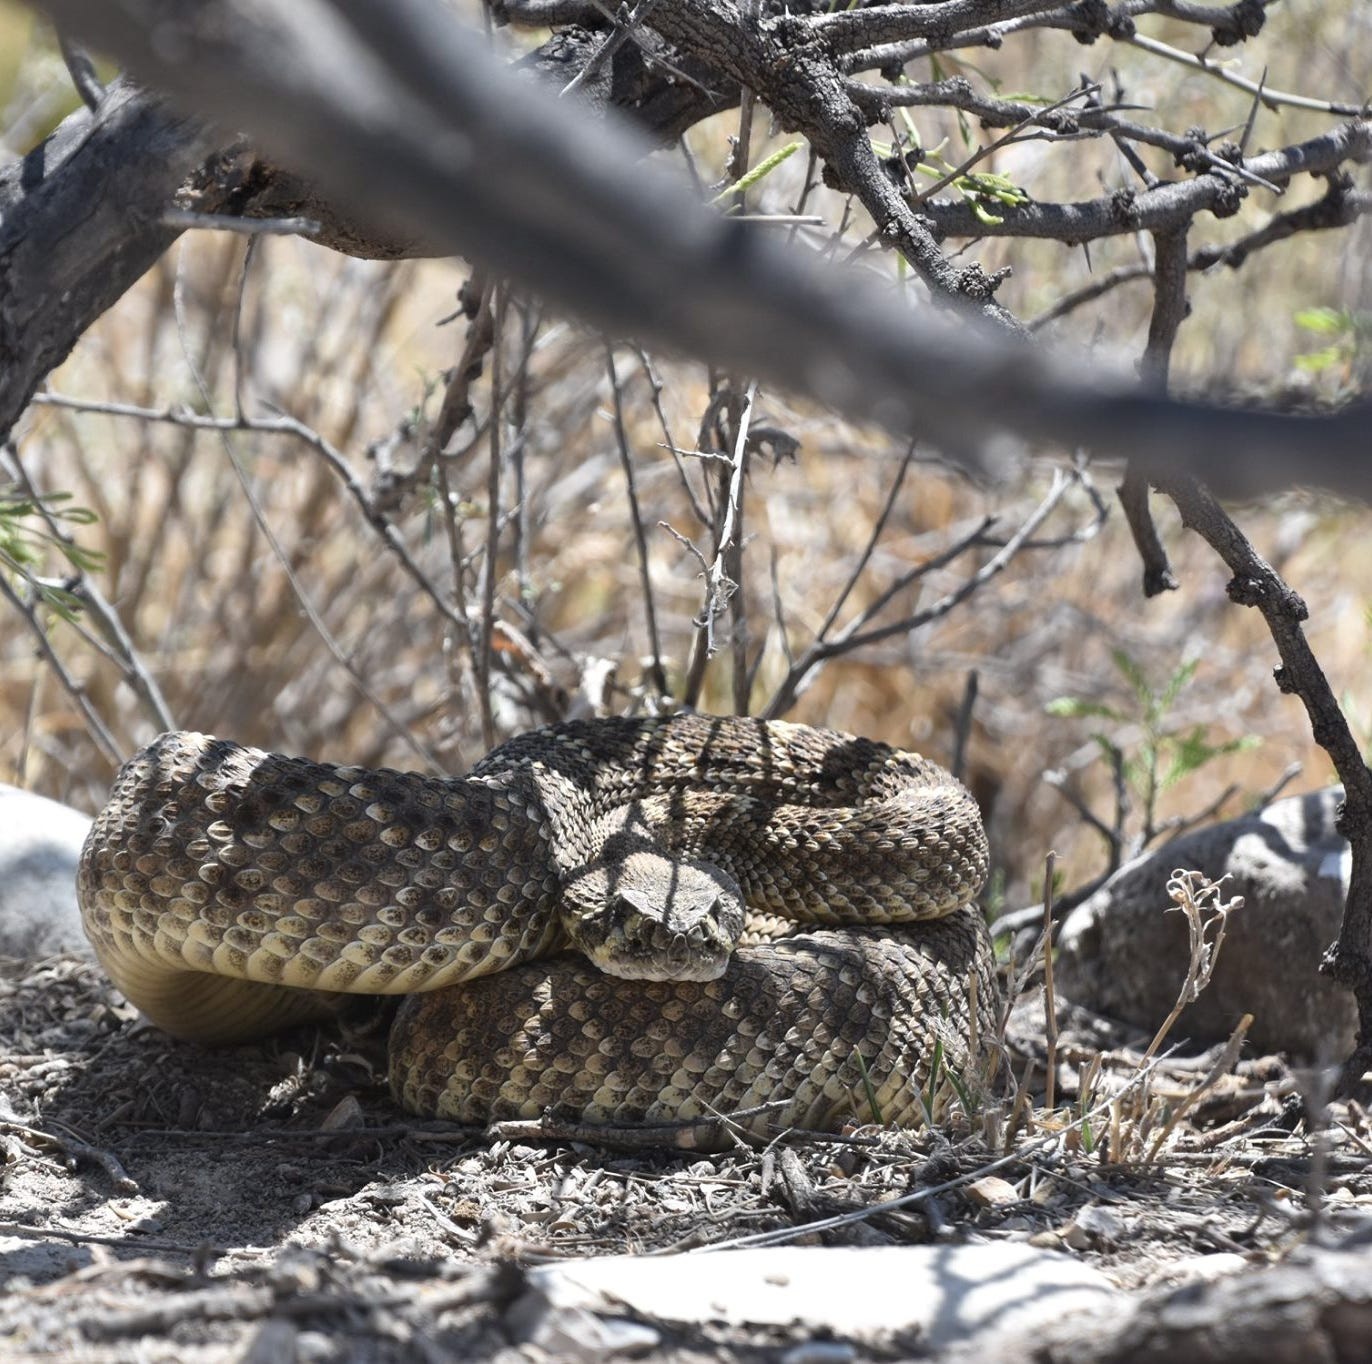 Las Cruces man bitten by rattlesnake while doing yard work at his home